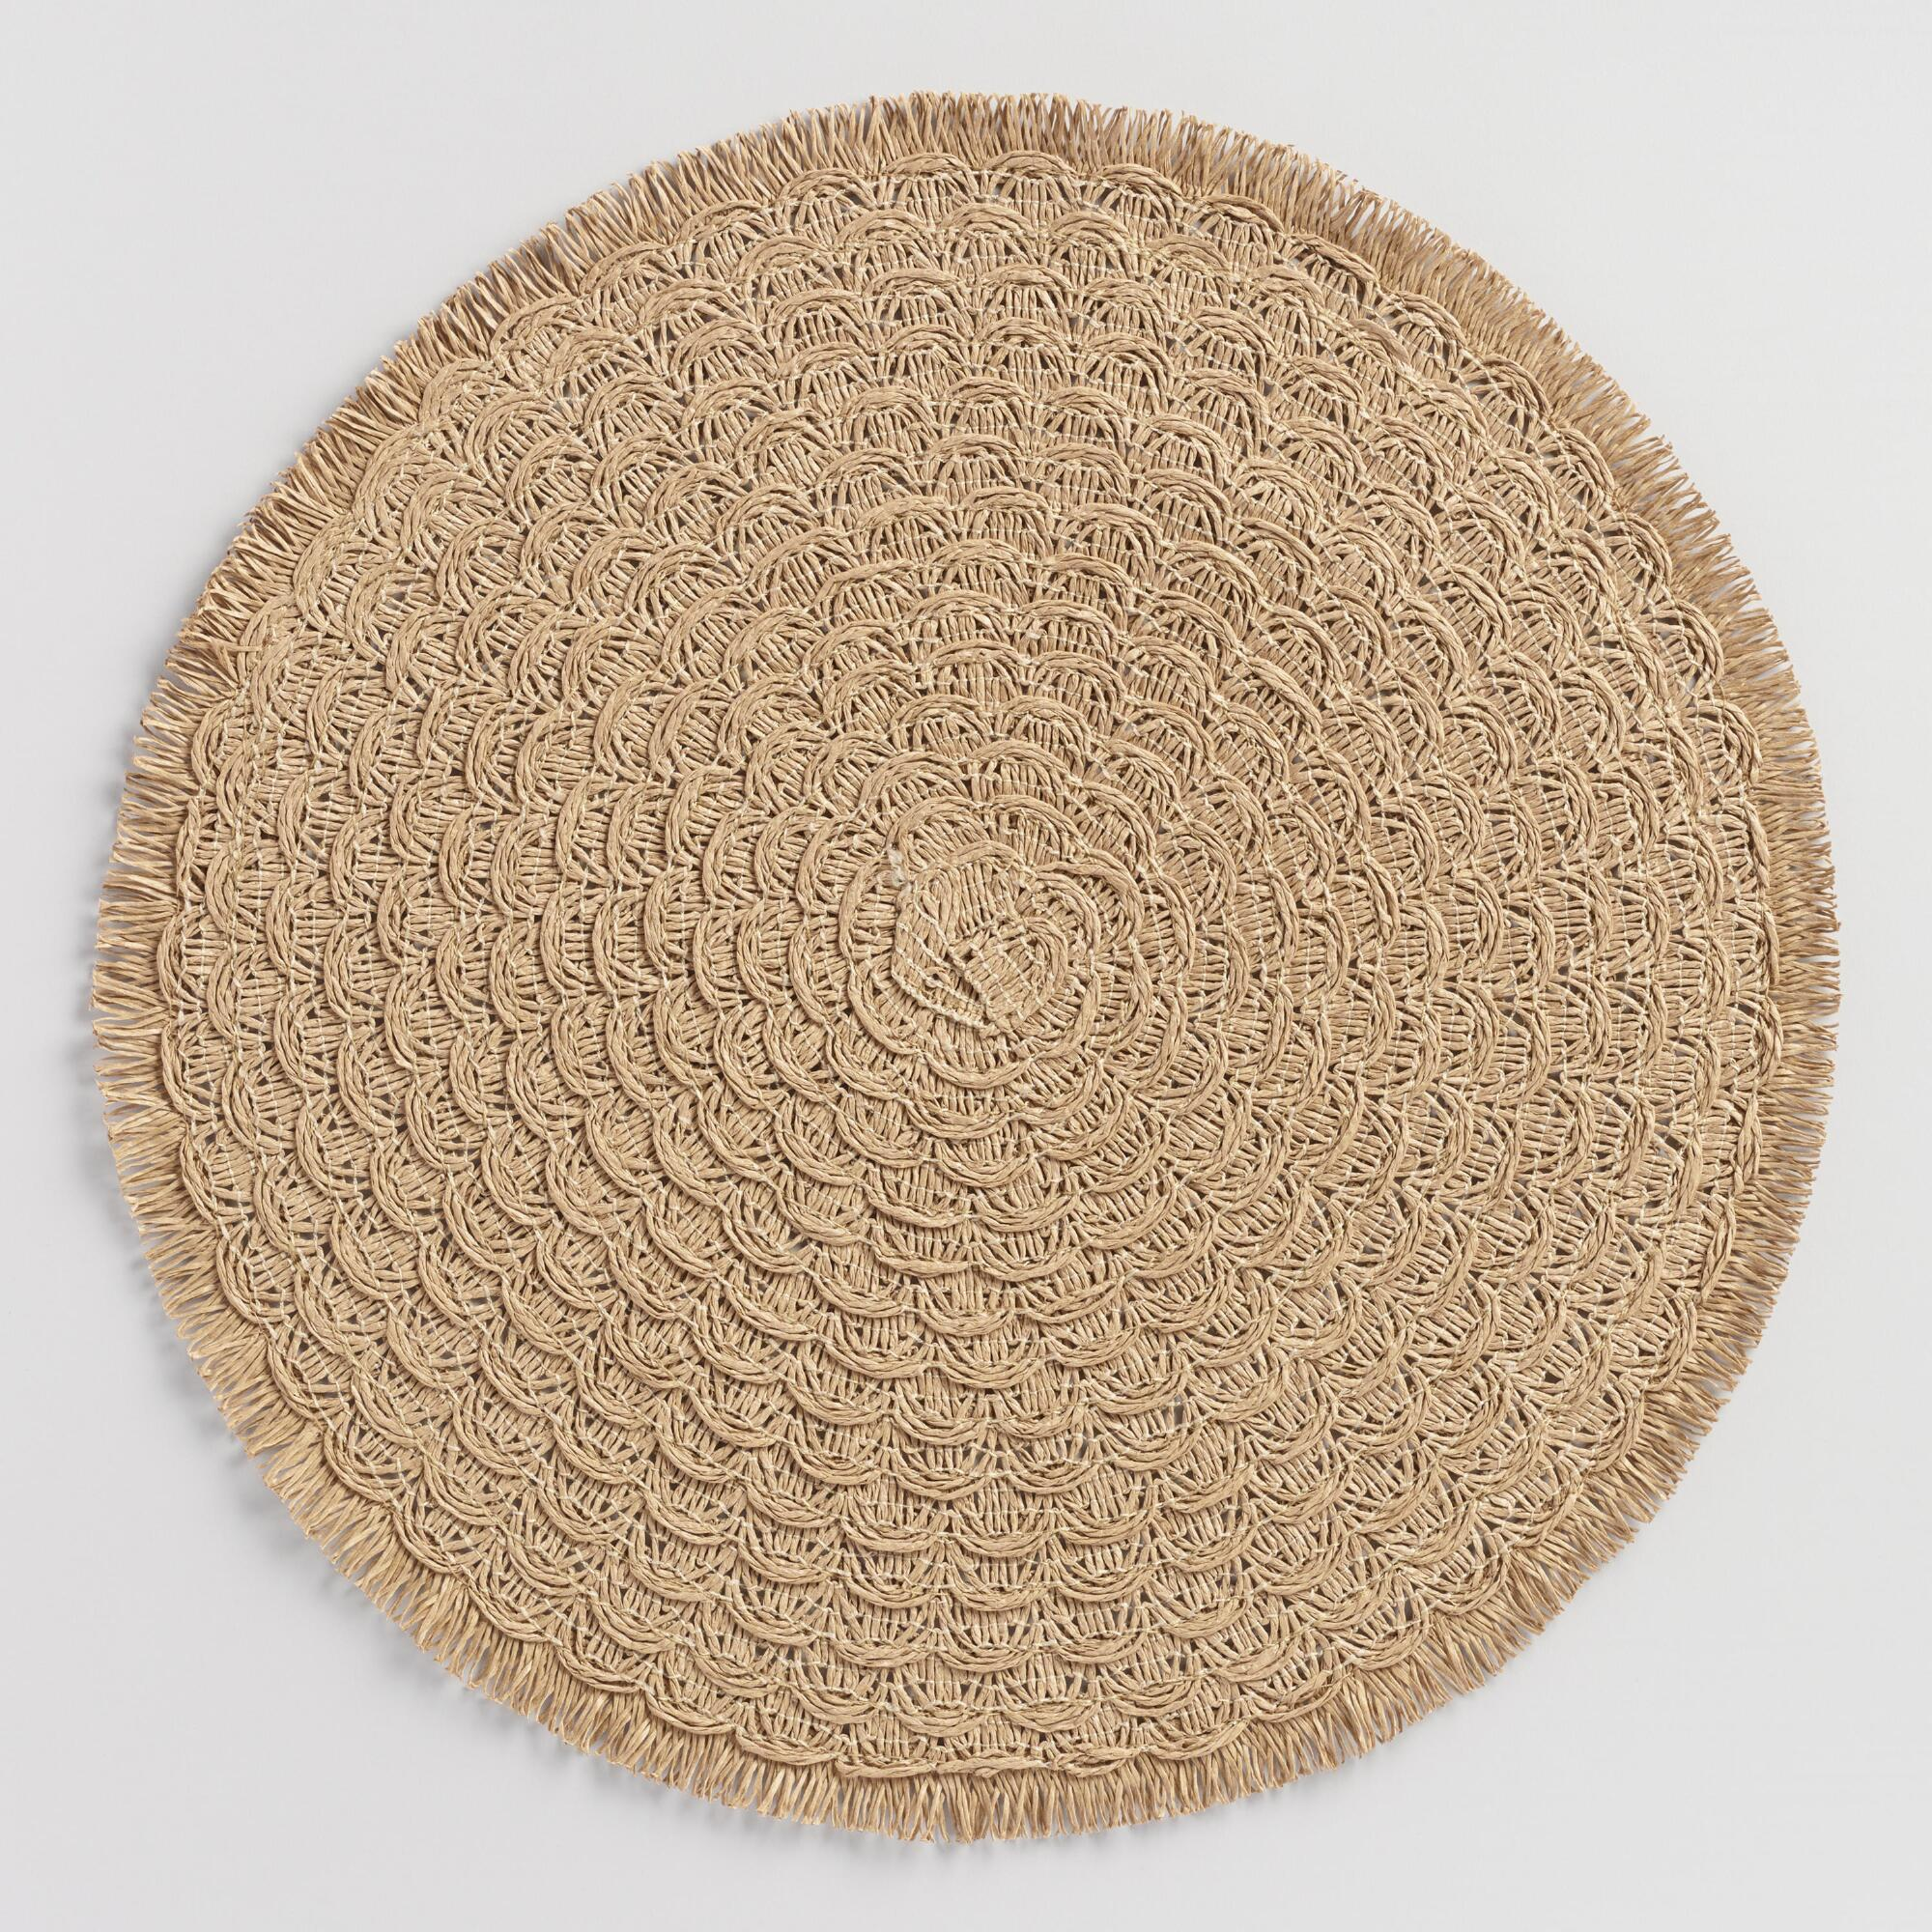 Round Natural Braided Placemats With Fringe Set Of 4 $19.99